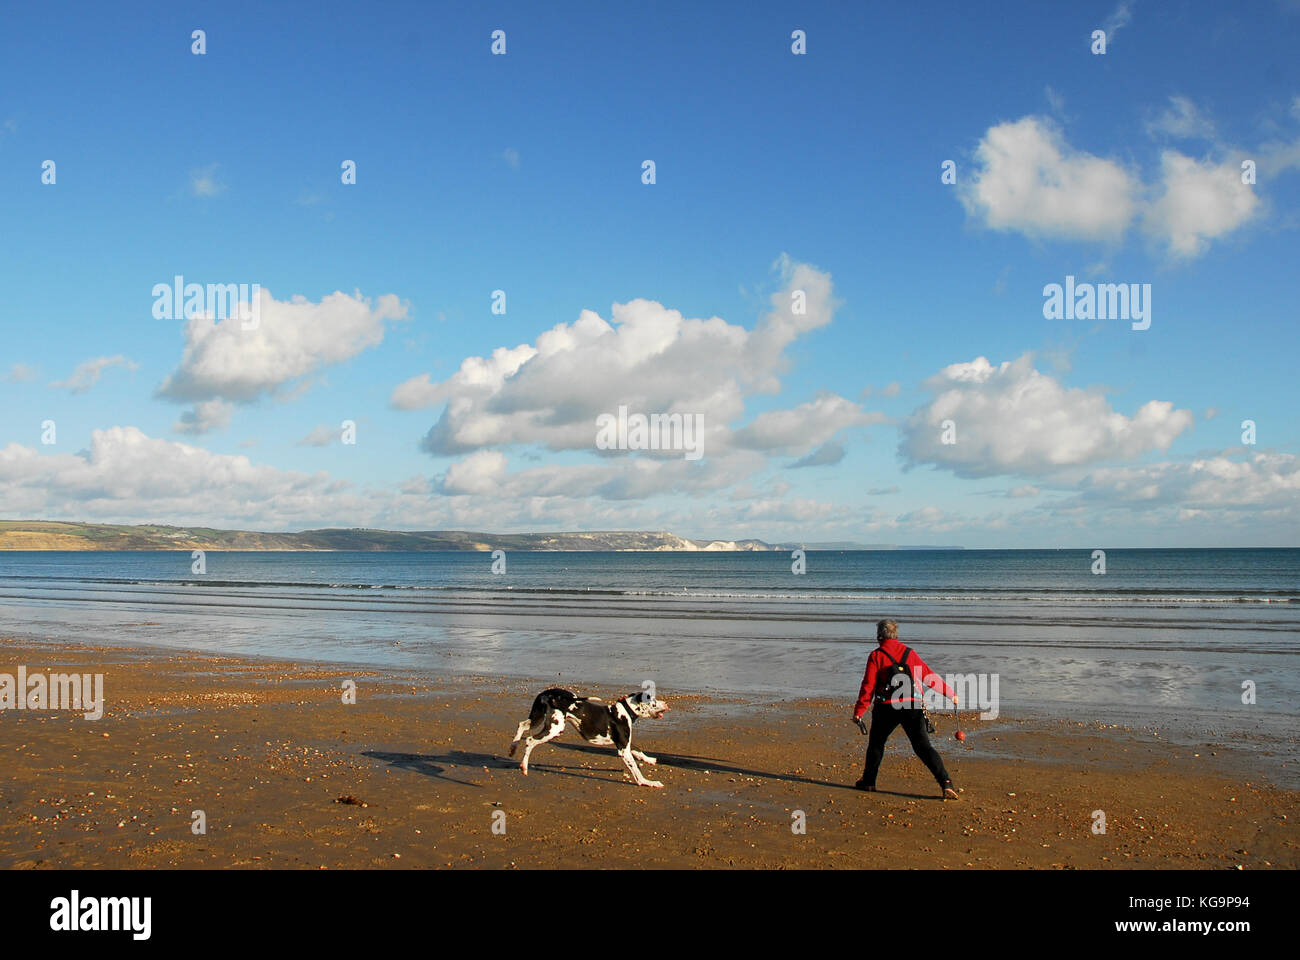 Weymouth, Dorset. 5th November 2017 - A woman wraps up warm and make the most of a gorgeous autumn day by exercising - Stock Image